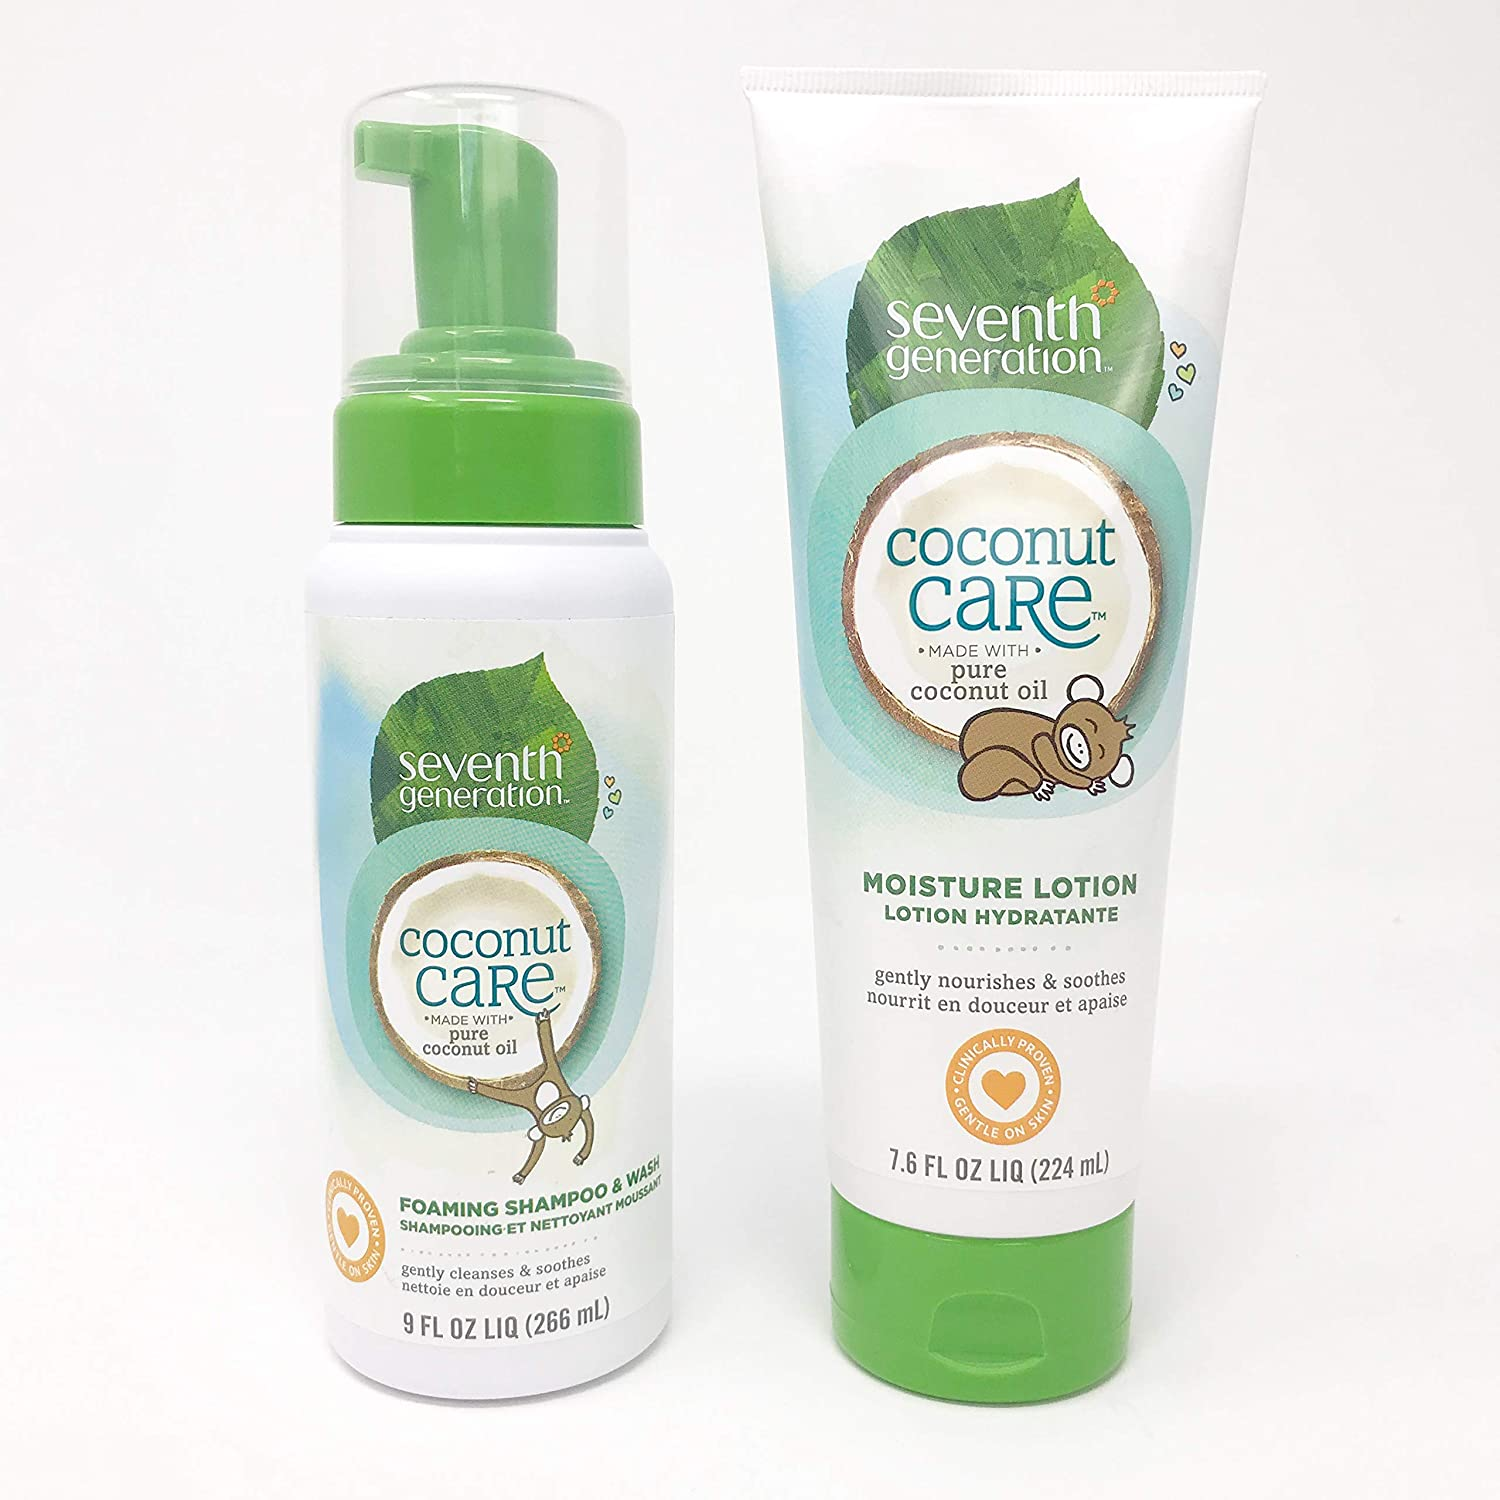 Seventh Generation Baby Care Shampoo & Body Wash and Body Lotion Set: 1) Foaming Shampoo & Wash and 1) Moisture Lotion | USDA Certified Biobased Product | Gluten Free | Gentle On Baby's Skin